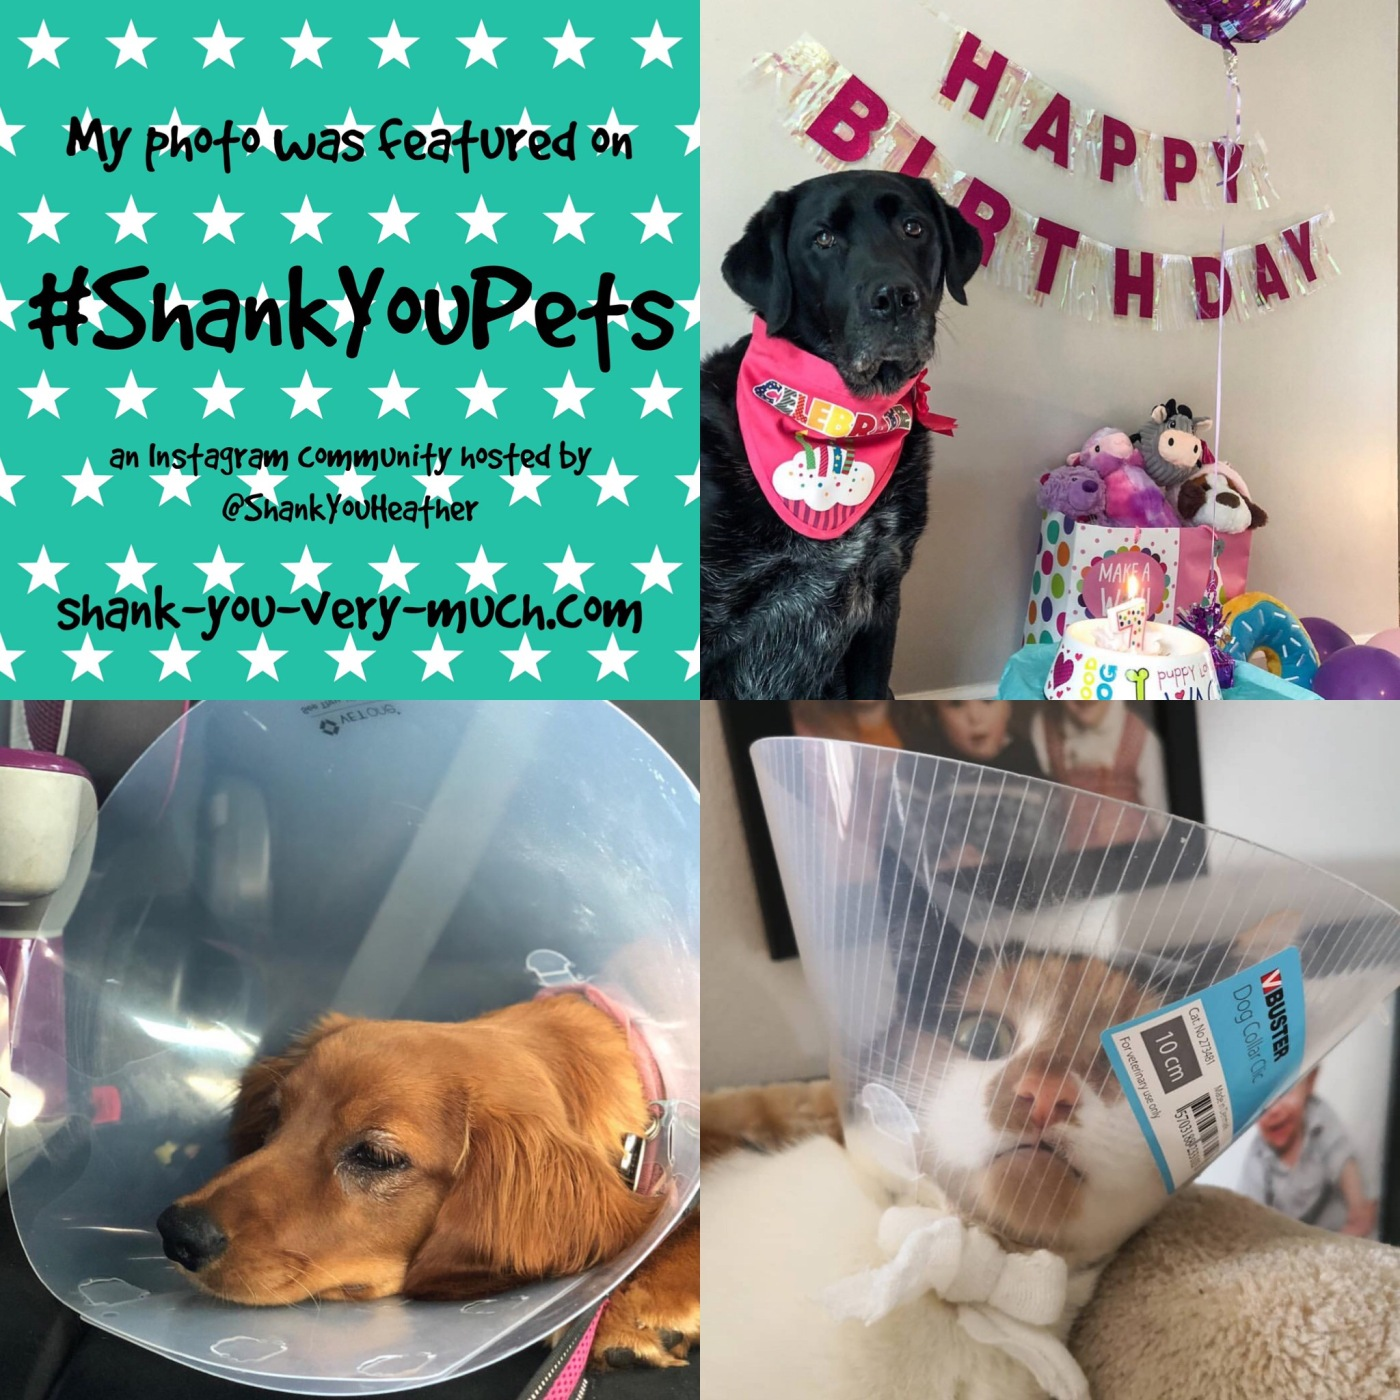 A photo collage showing a dog at her birthday party and another dog and cat wearing a plastic cone on their heads.